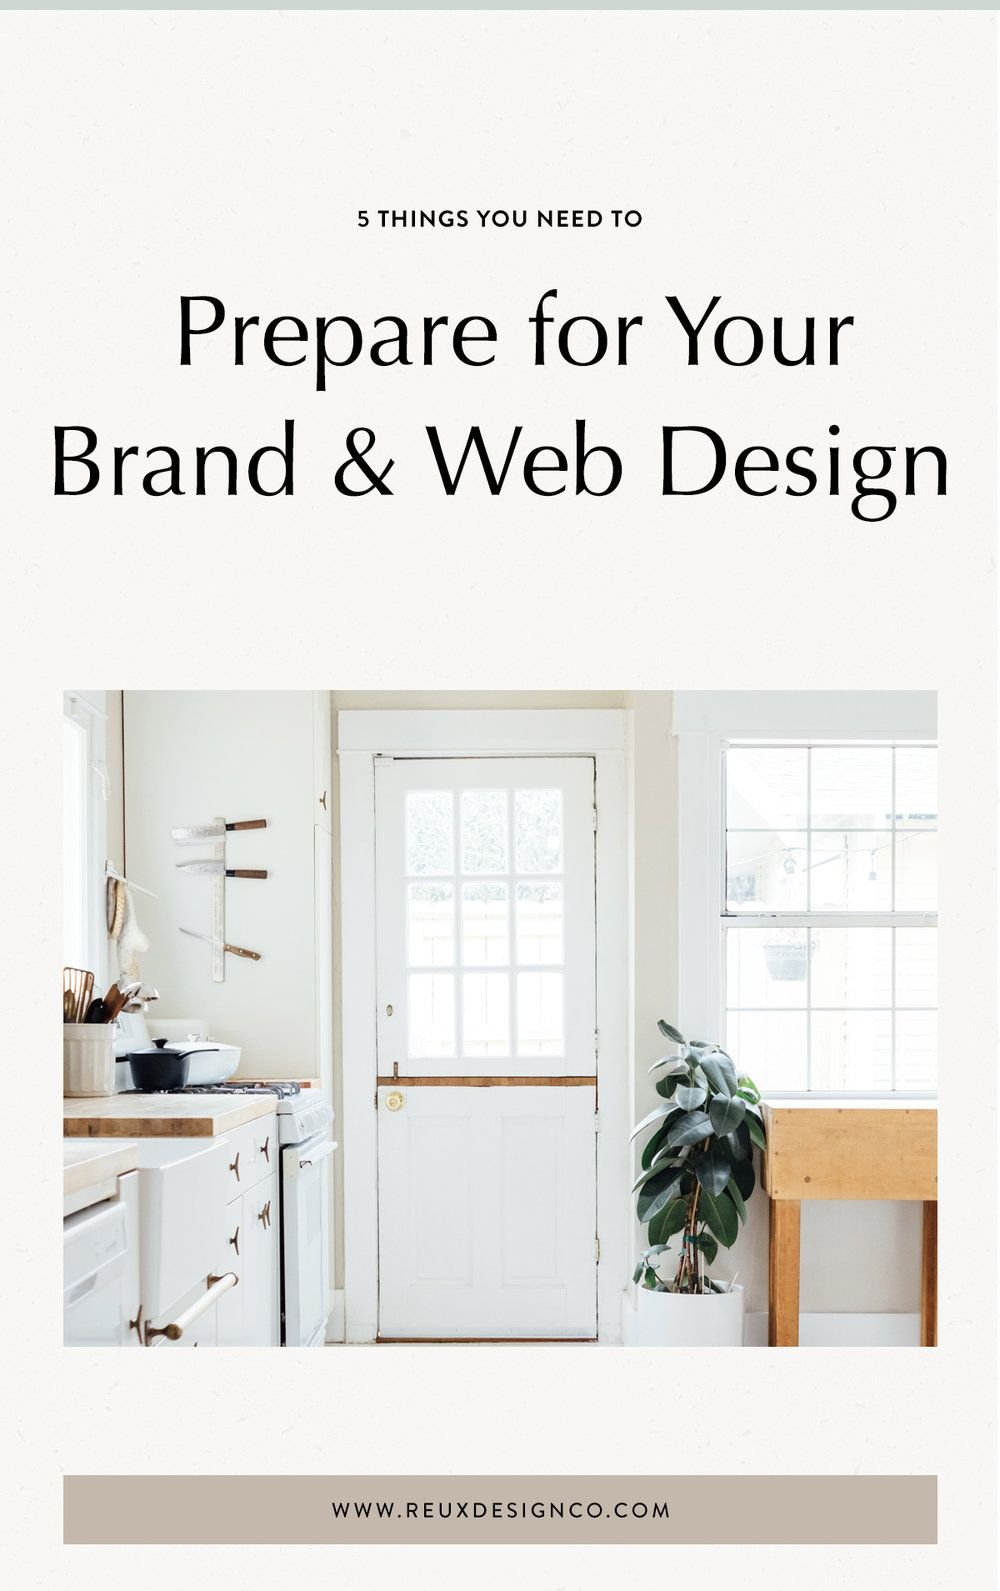 How To Prepare For Your Brand Web Design Project In 2020 Web Design Projects Web Design Design Projects